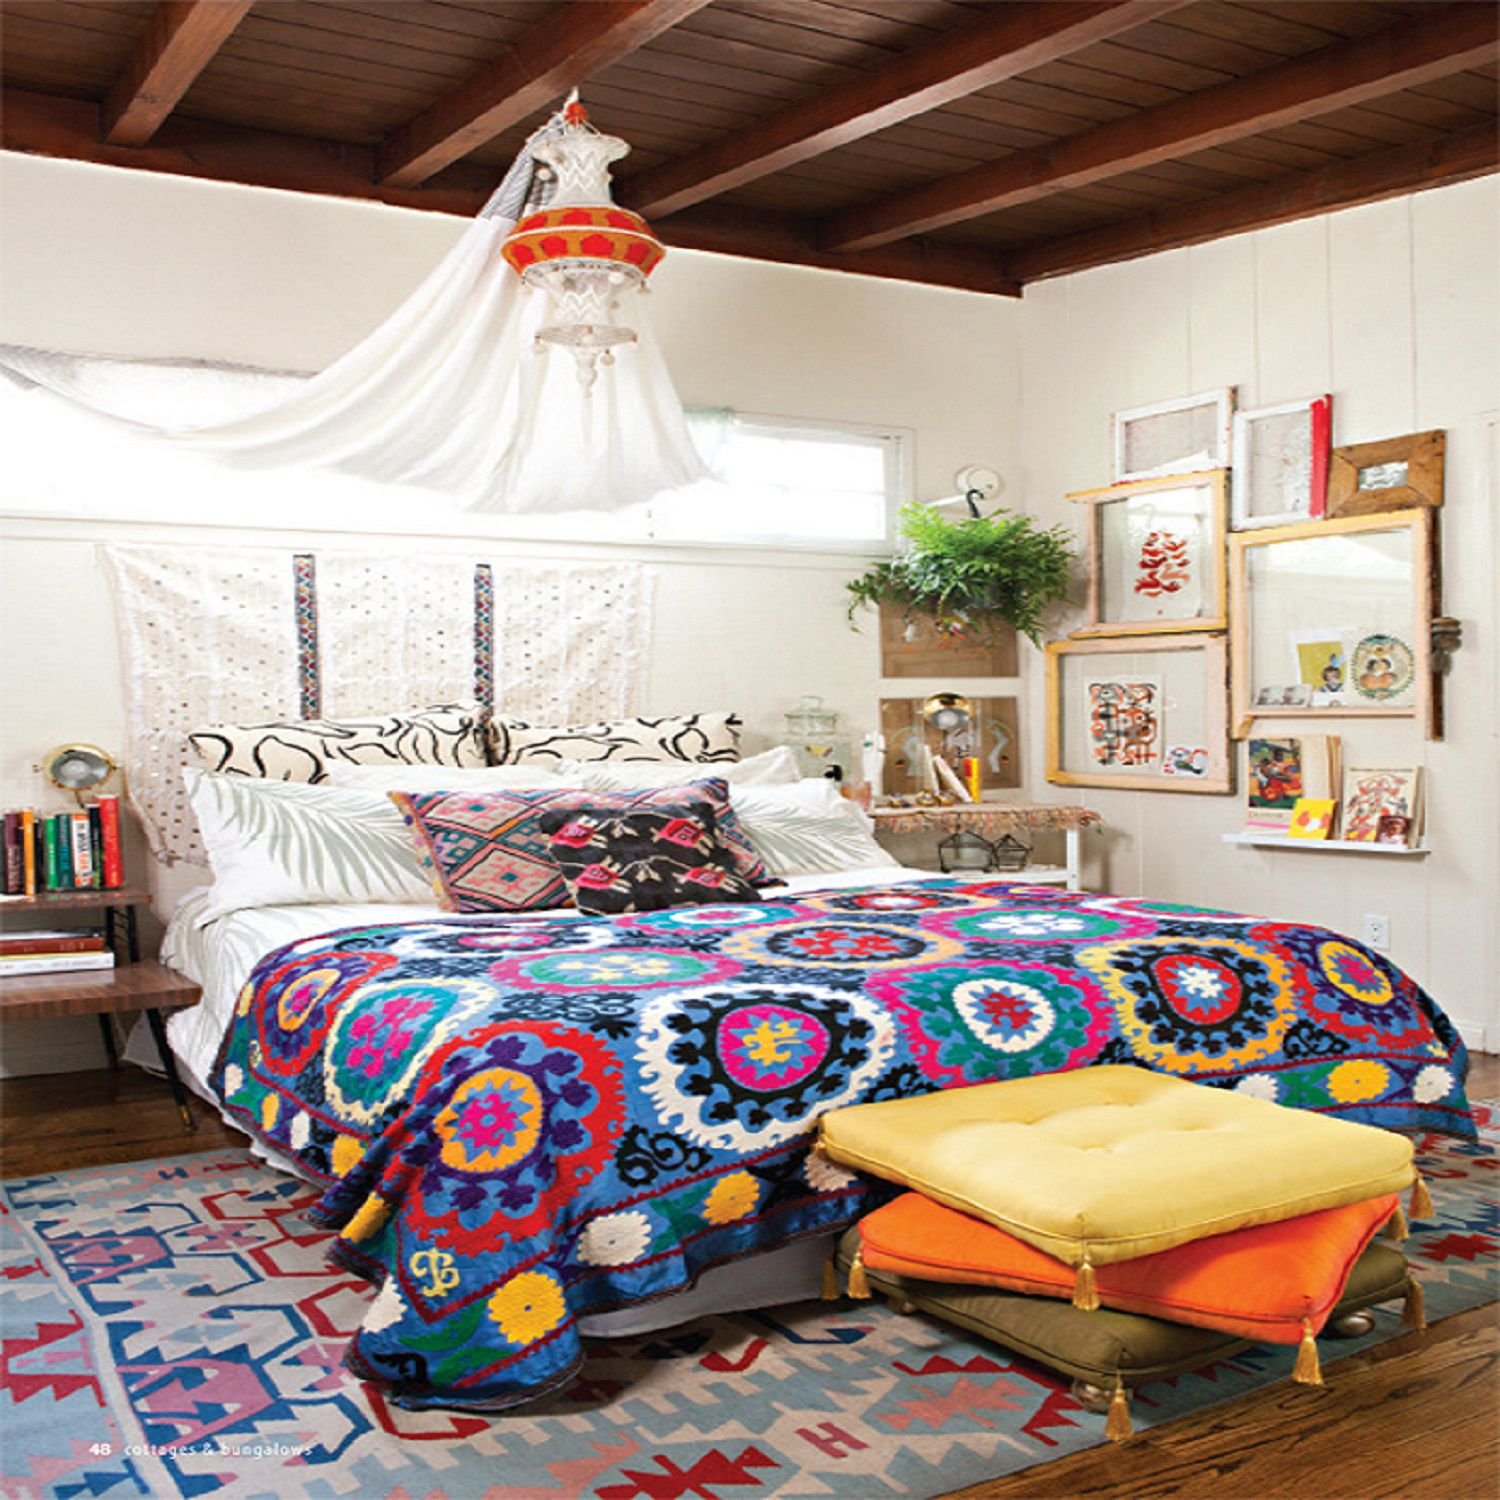 Bedroom Decorating Tips: Beautiful Boho Bedroom Decorating Ideas And Photos